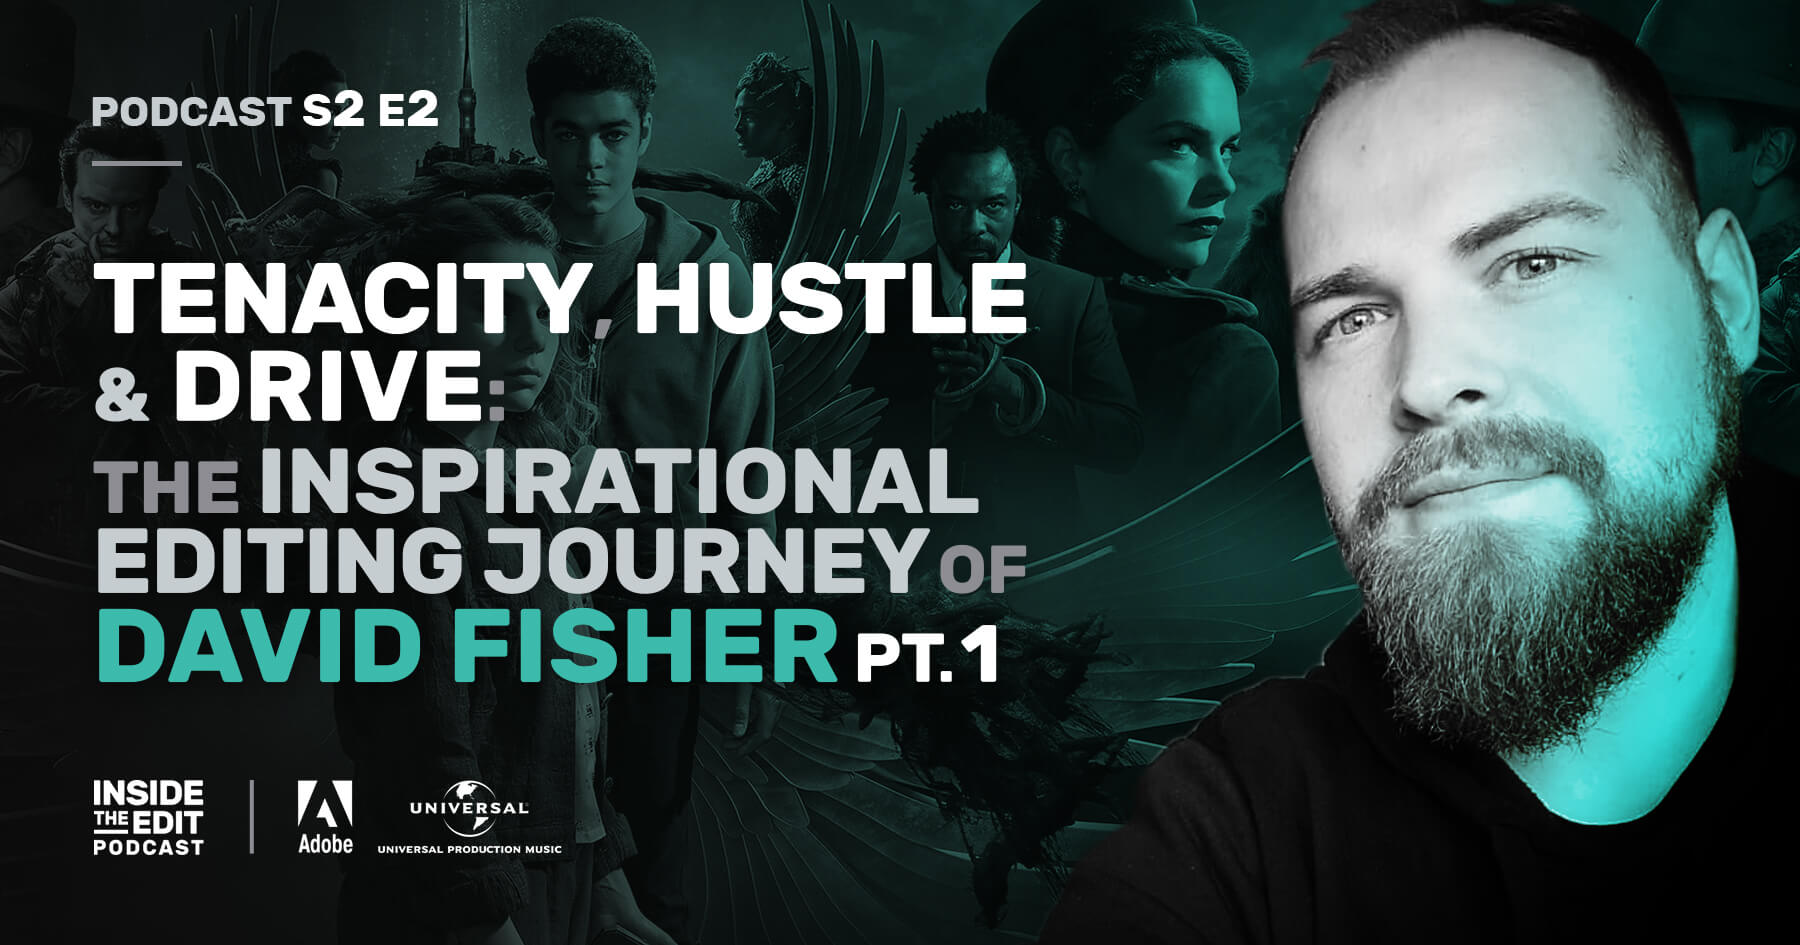 Tenacity, Hustle & Drive: The Inspirational Editing Journey of David Fisher Part 1